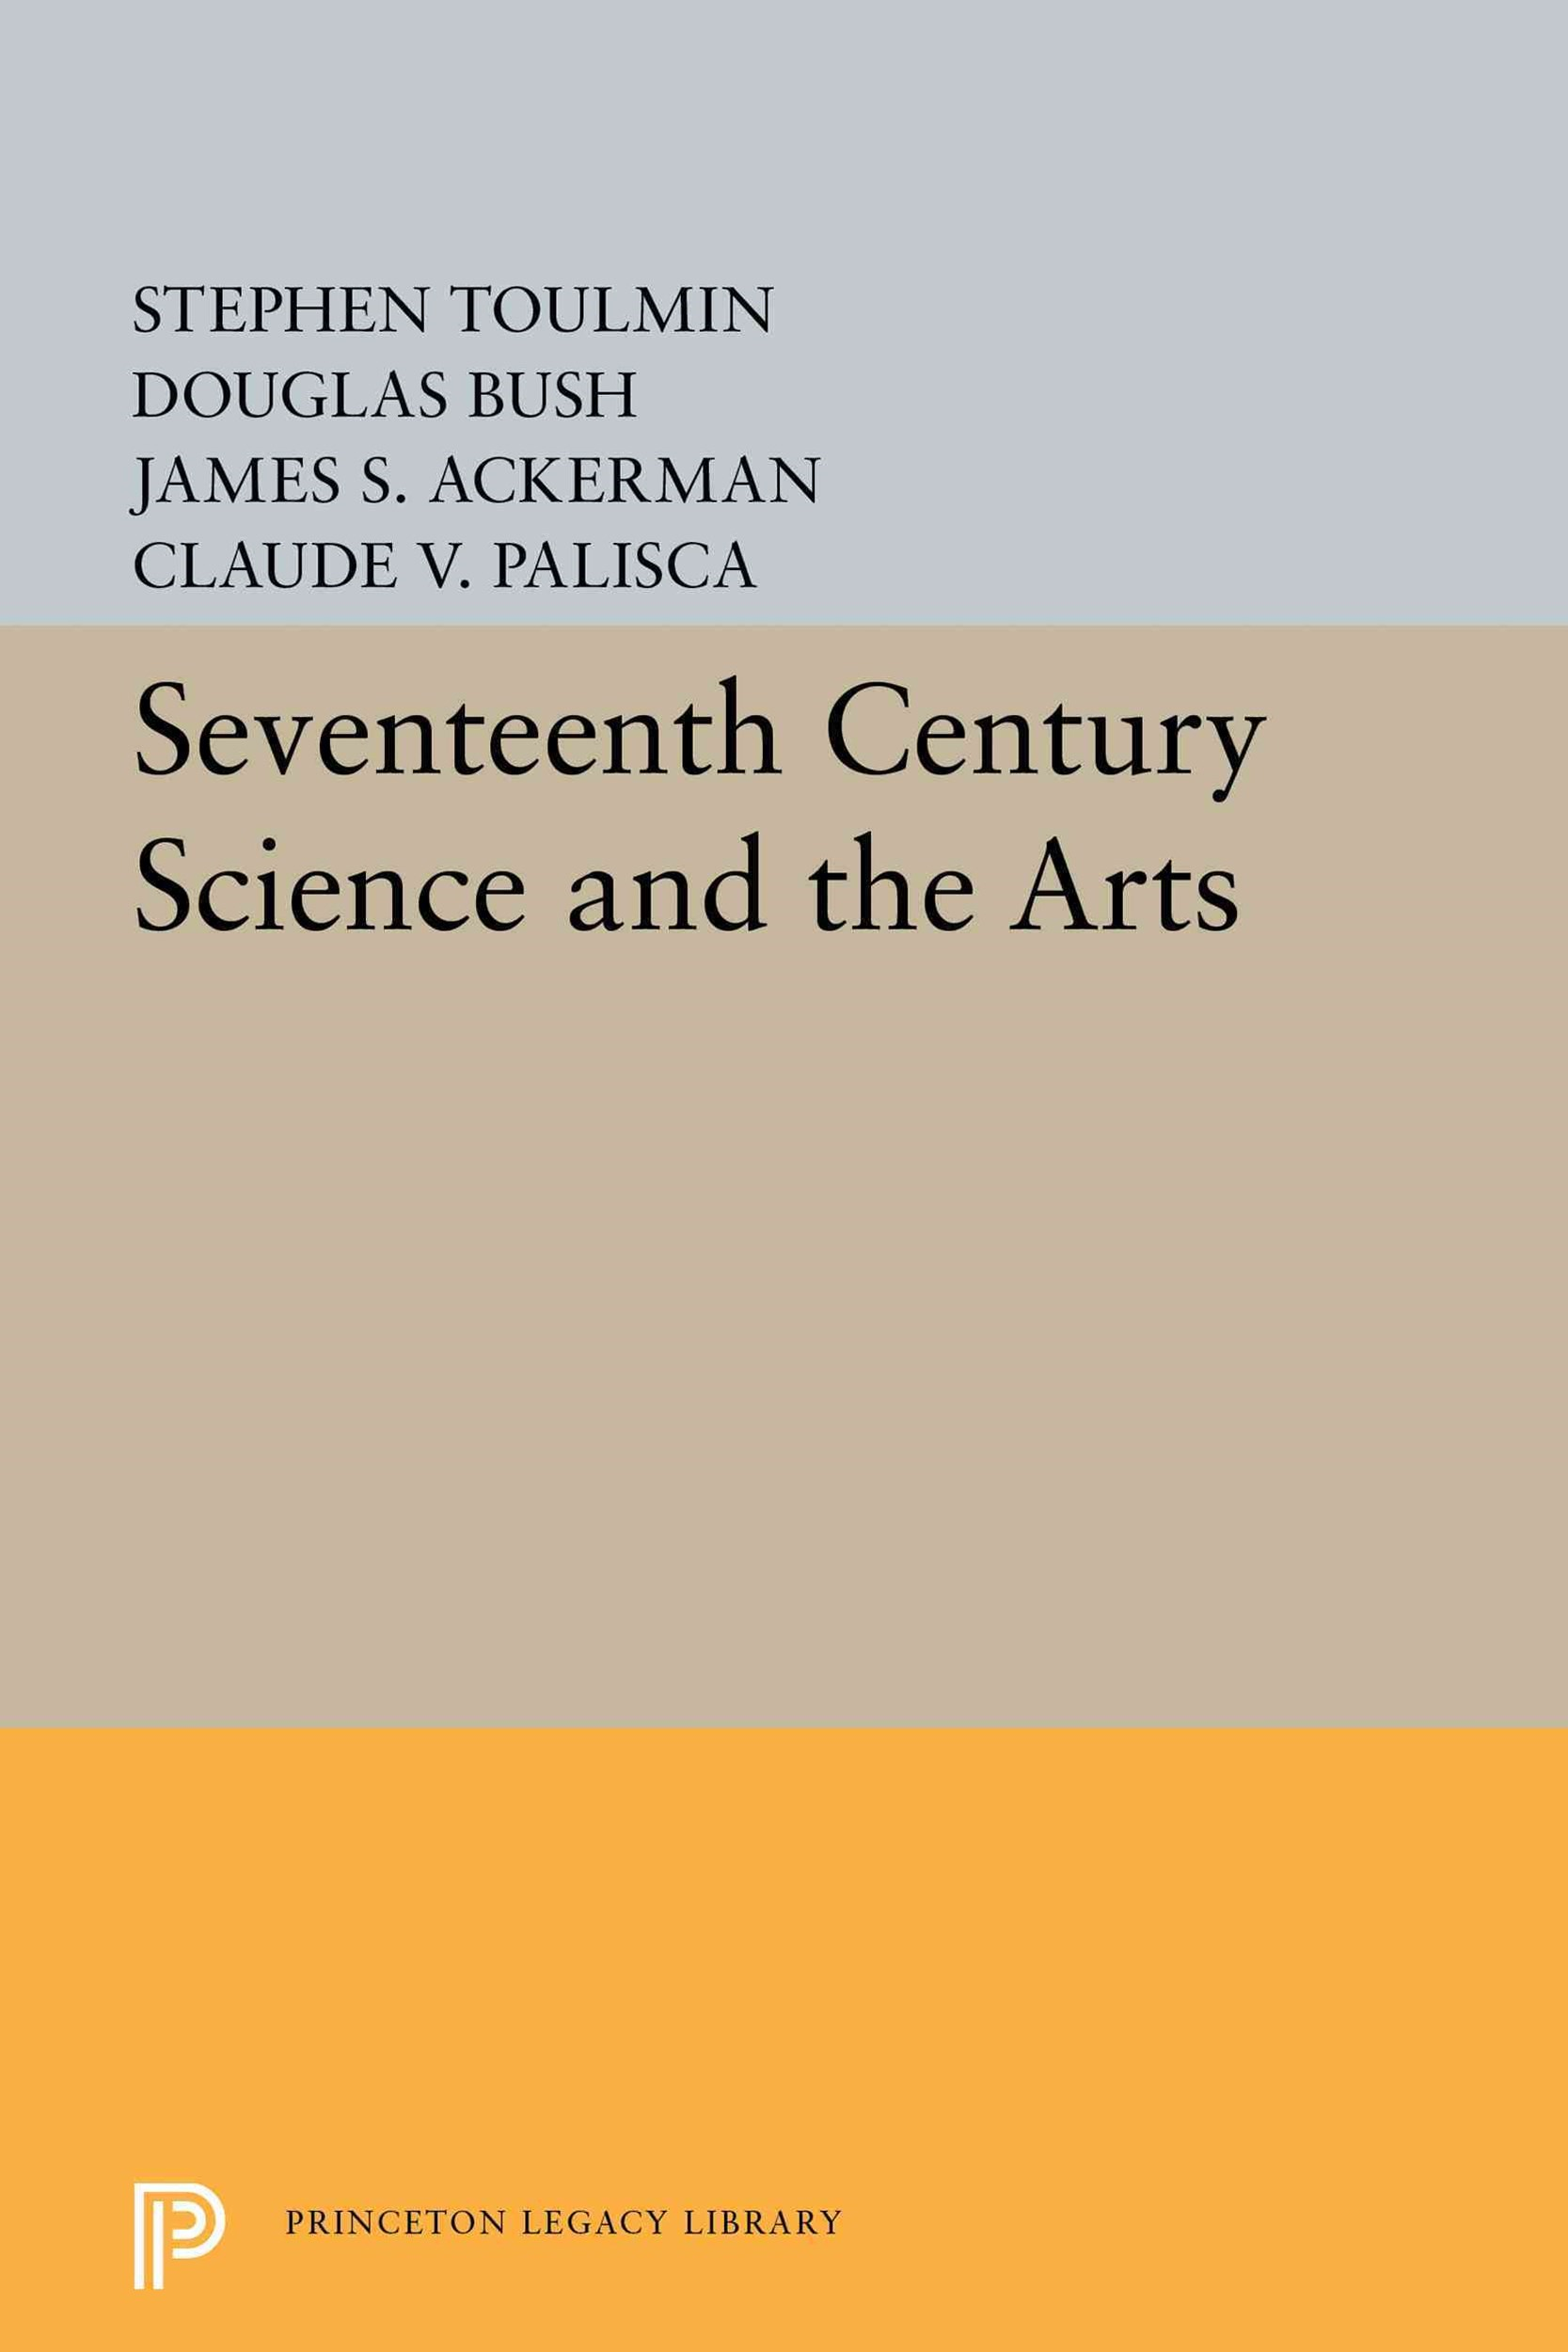 Seventeenth-Century Science and the Arts